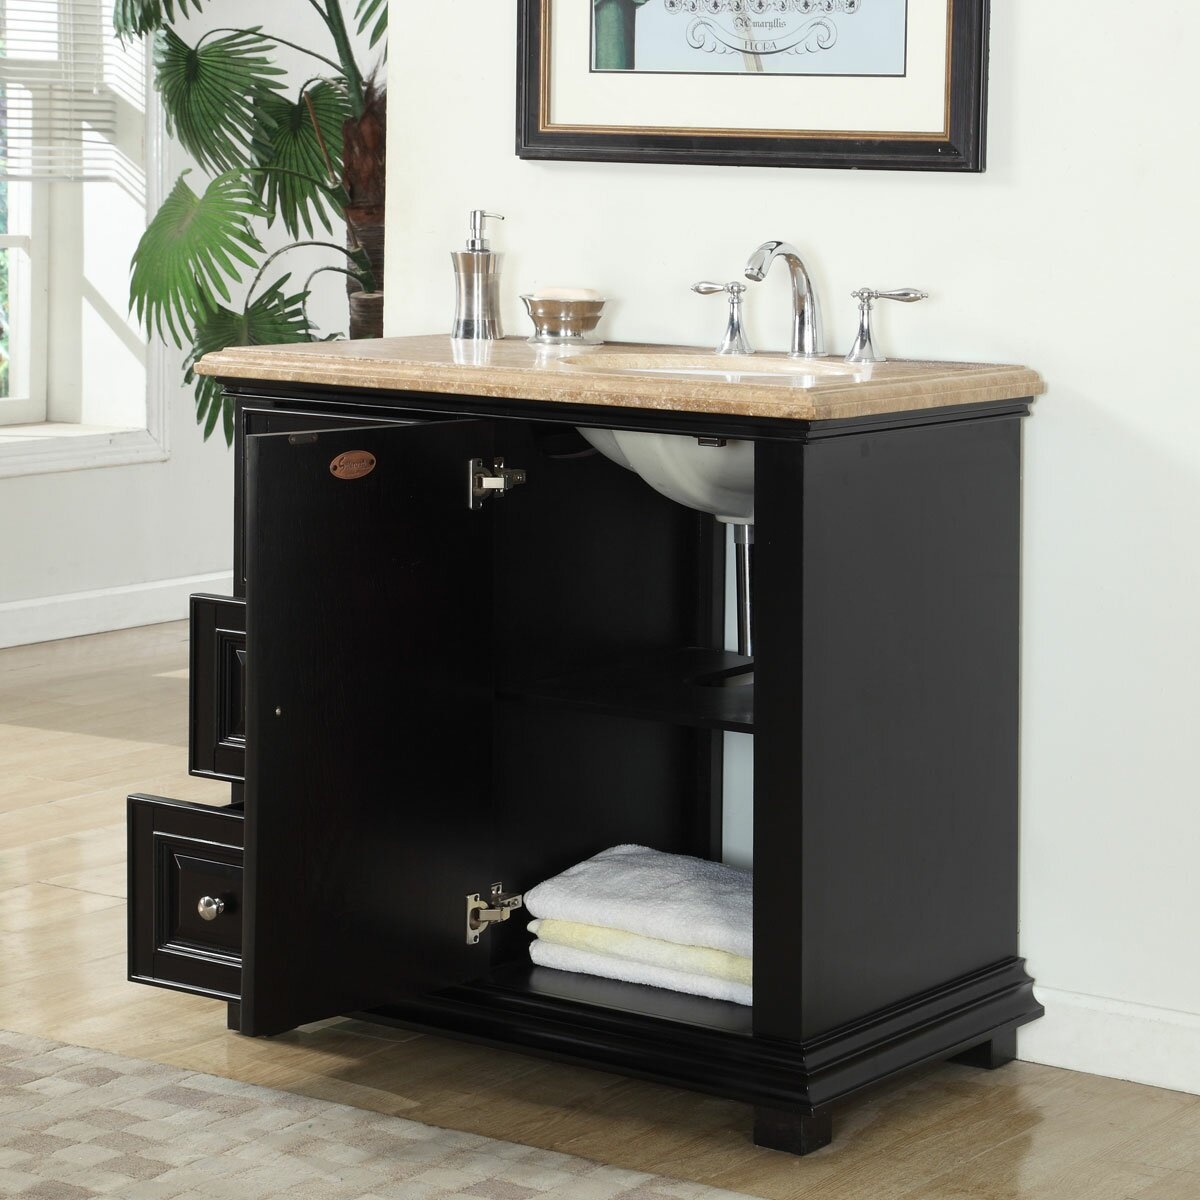 Silkroad exclusive 36 single bathroom vanity set with sink on right side reviews wayfair Bathroom sink and vanity sets